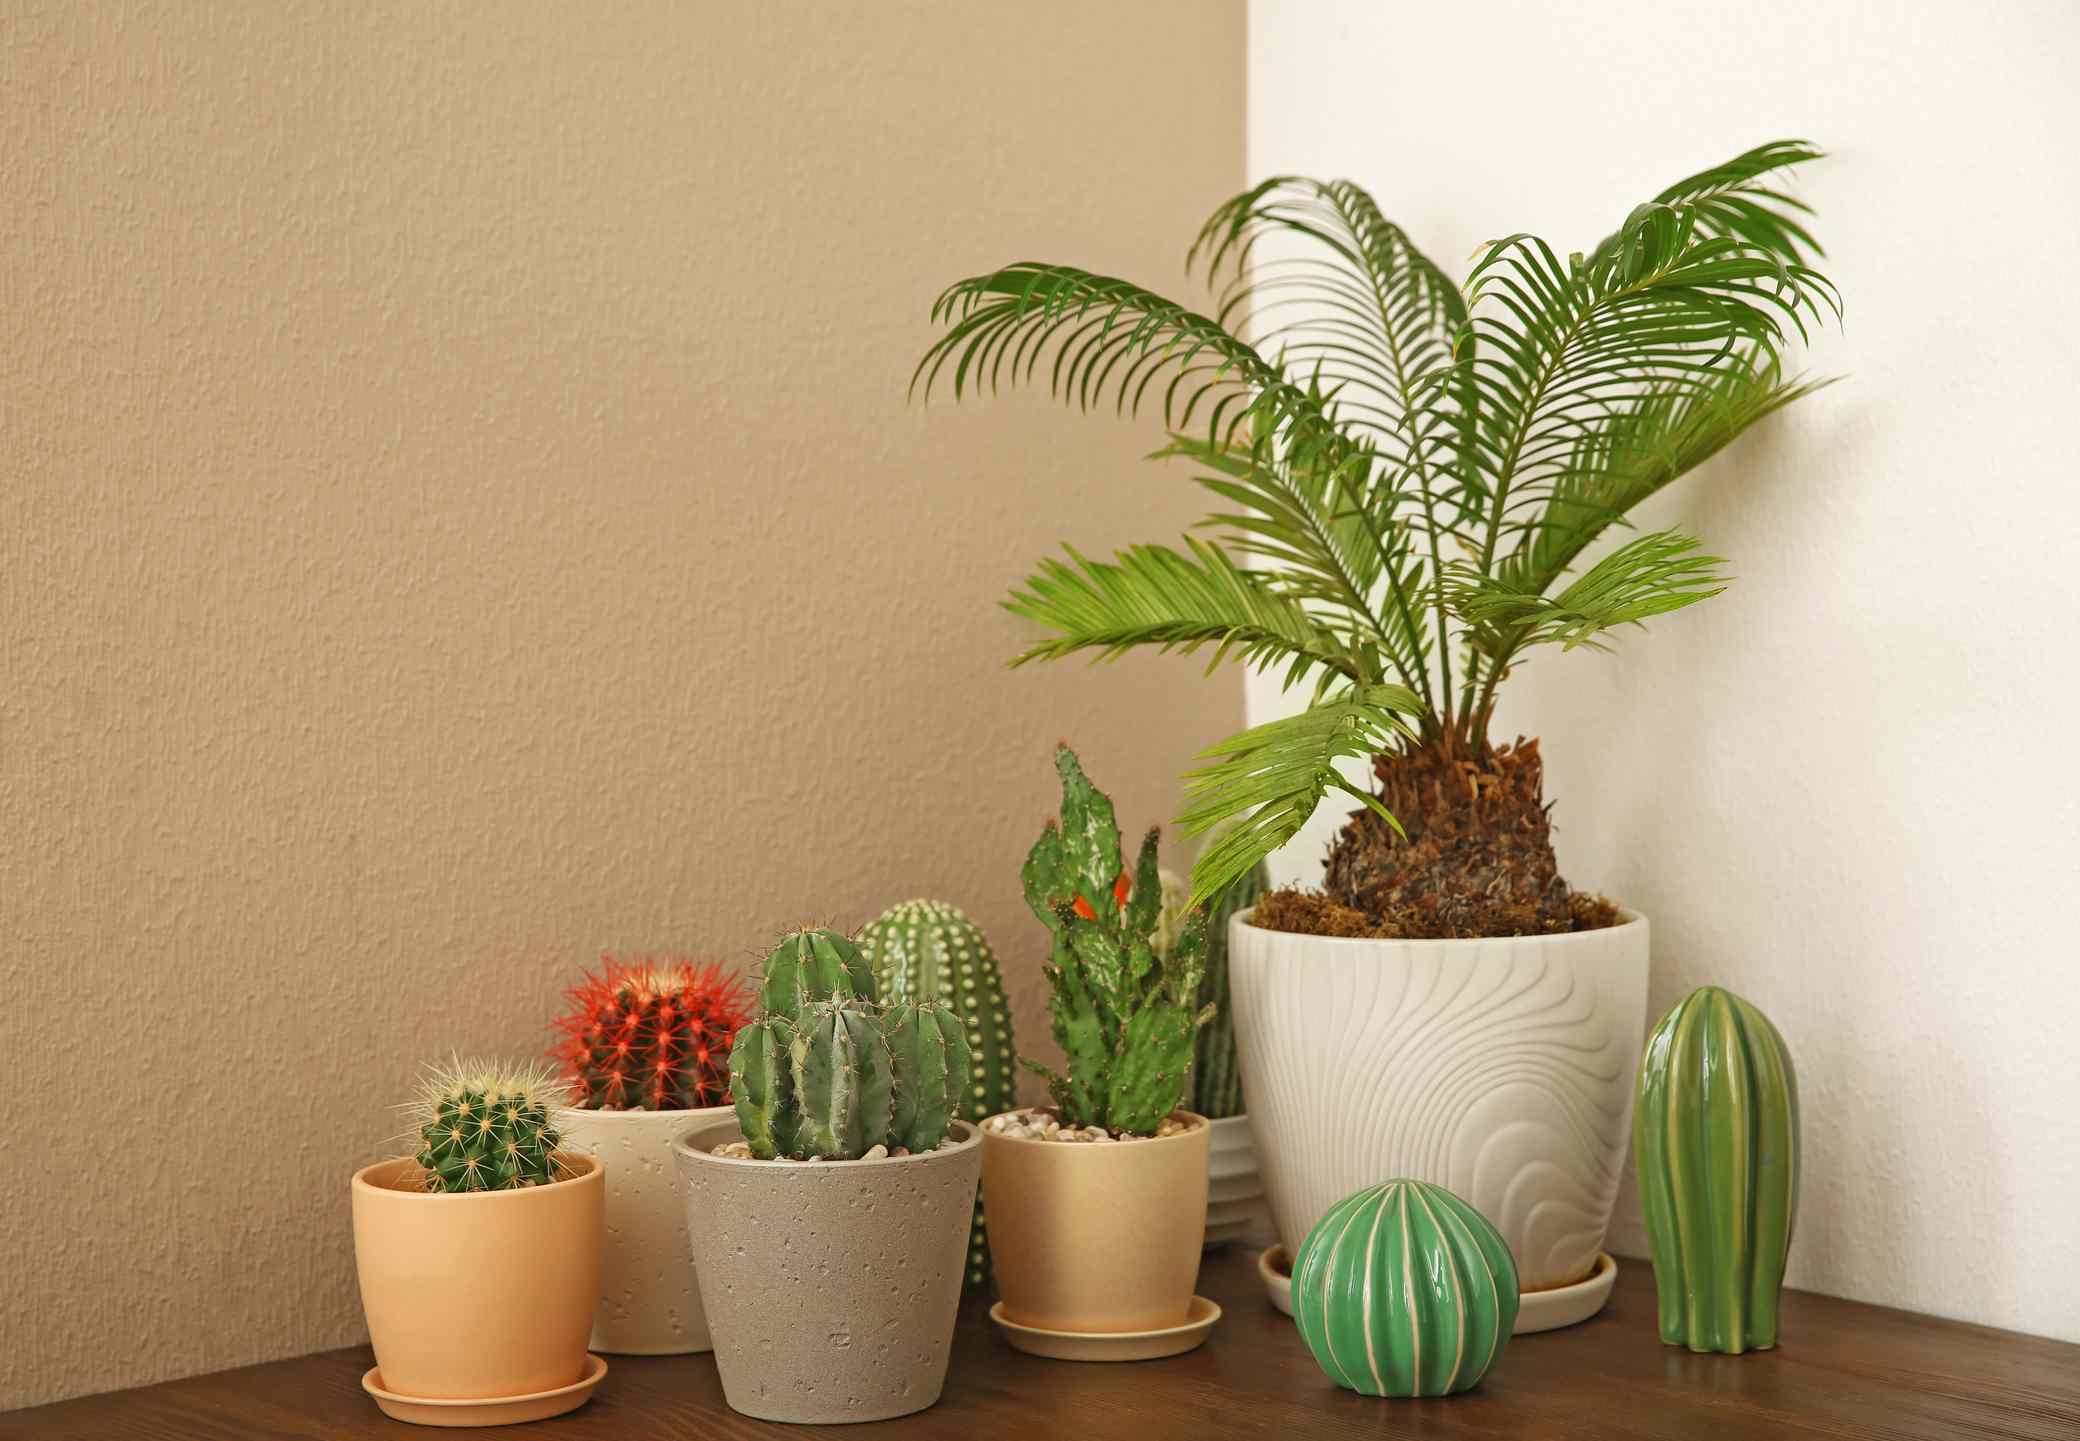 A sago palm sits on a table indoors with cacti.